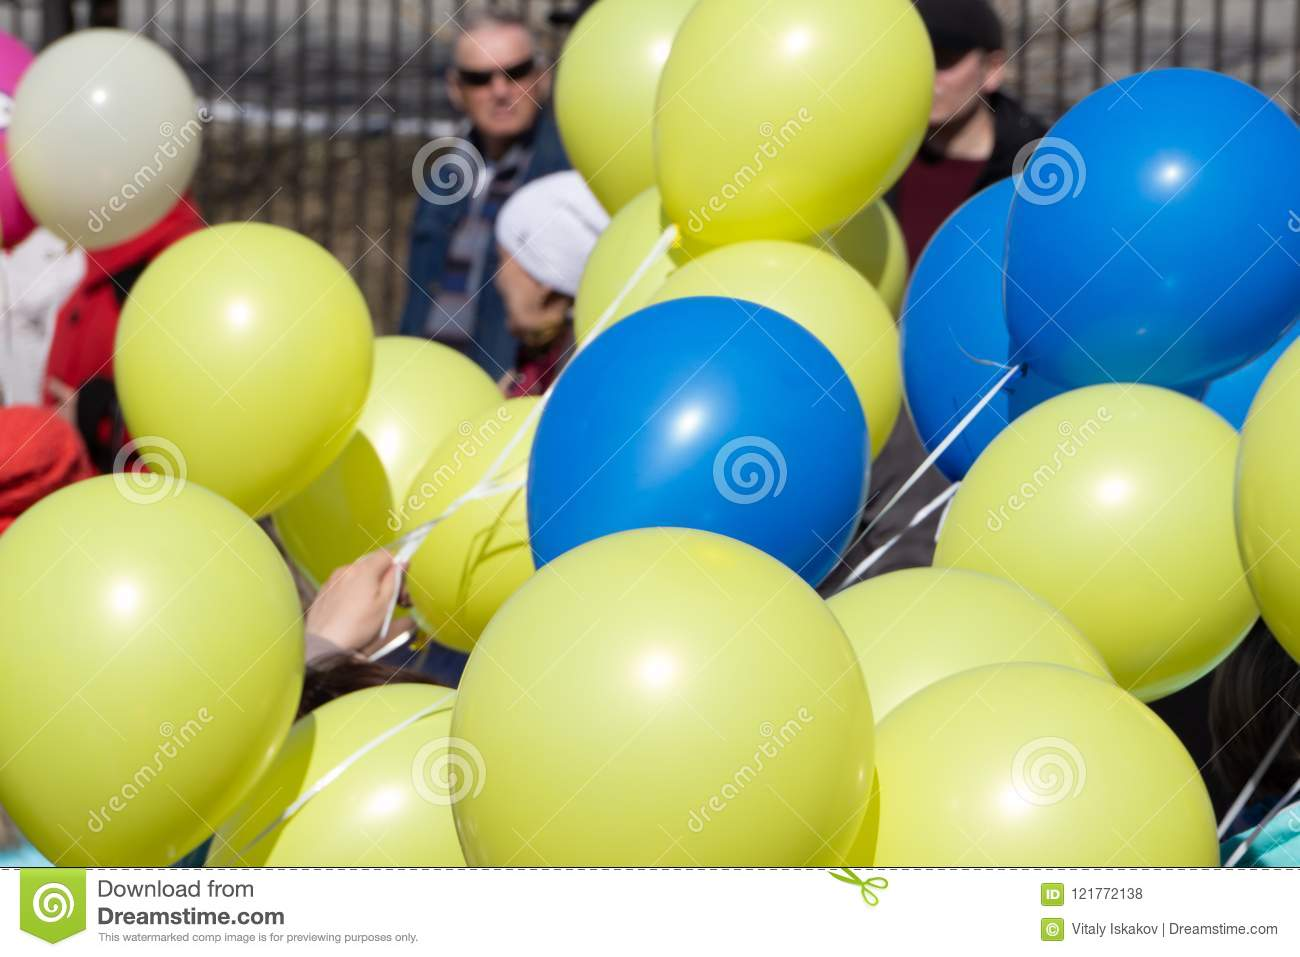 Colorful bouncing balls outdoors against blue sunny sky .